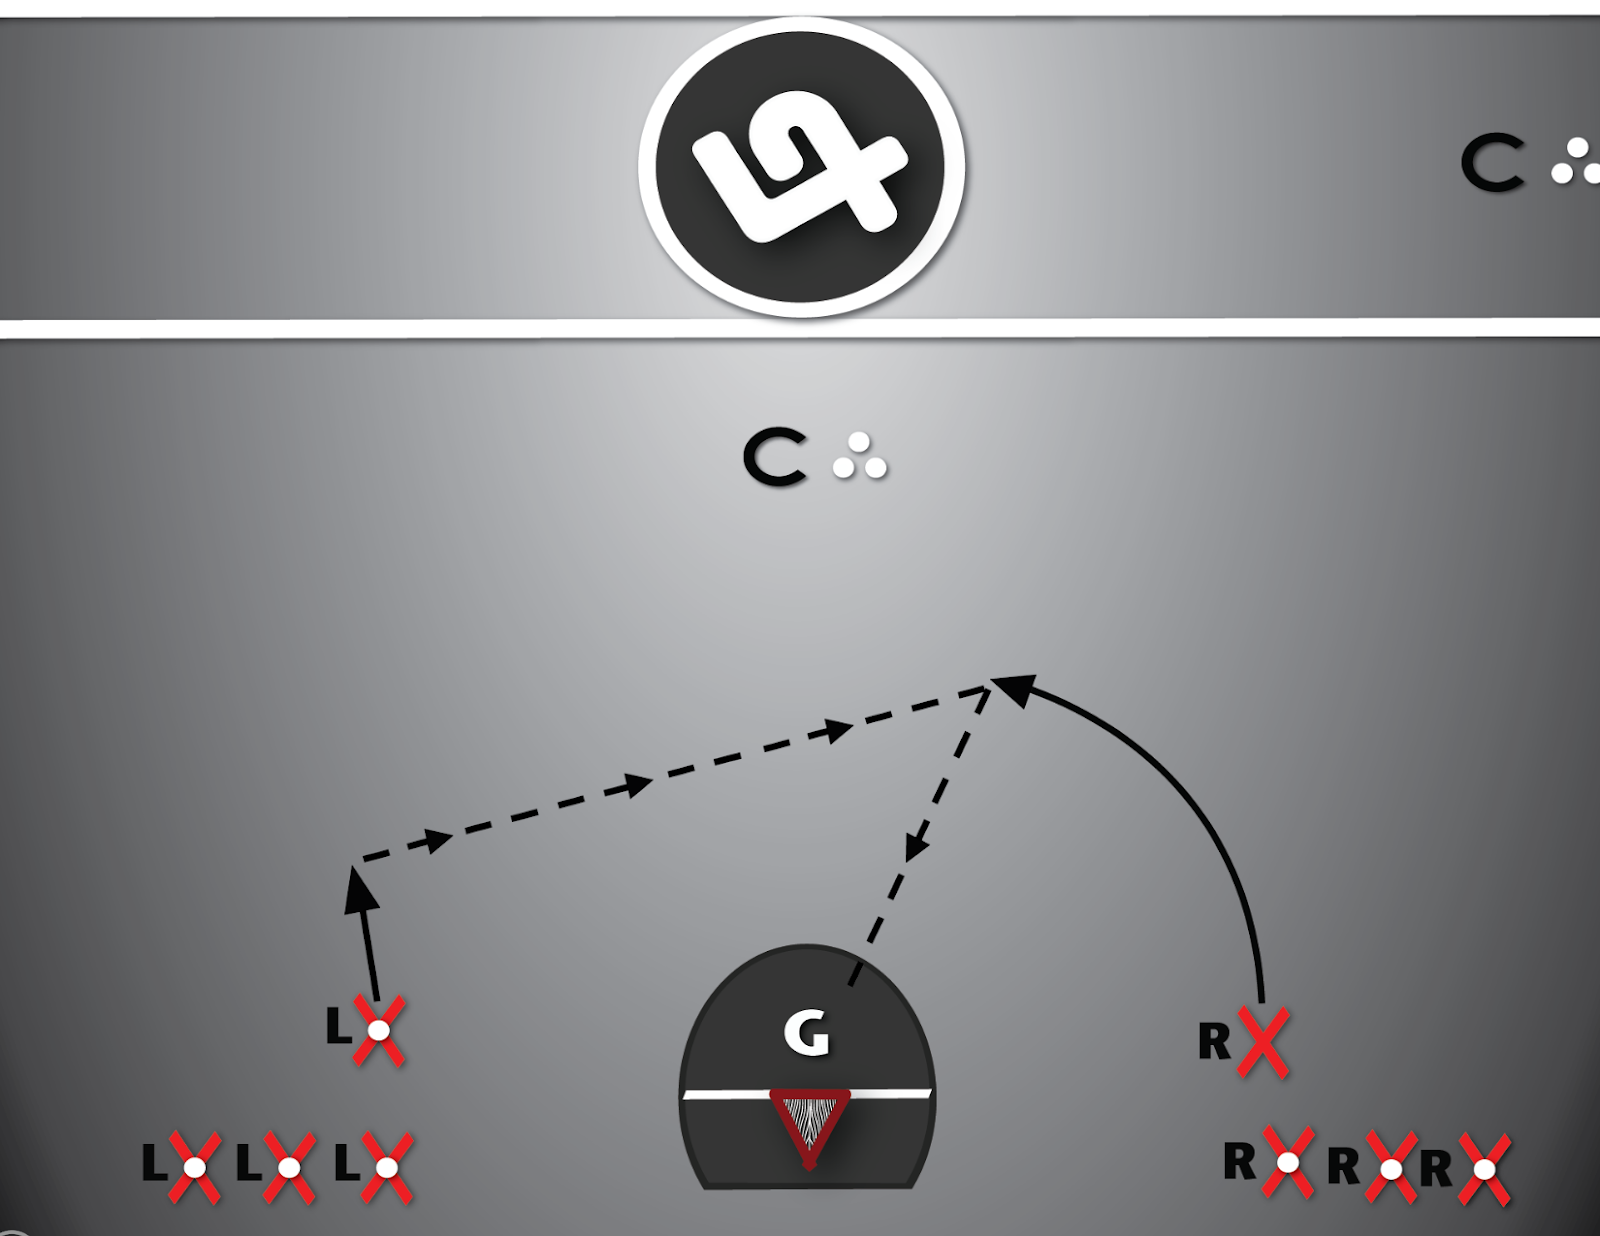 Lacrosse Shooting Drill #5, the catch and shoot (Dynamic) has player catching the pass on while running in an upwards arc and then shooting on net.